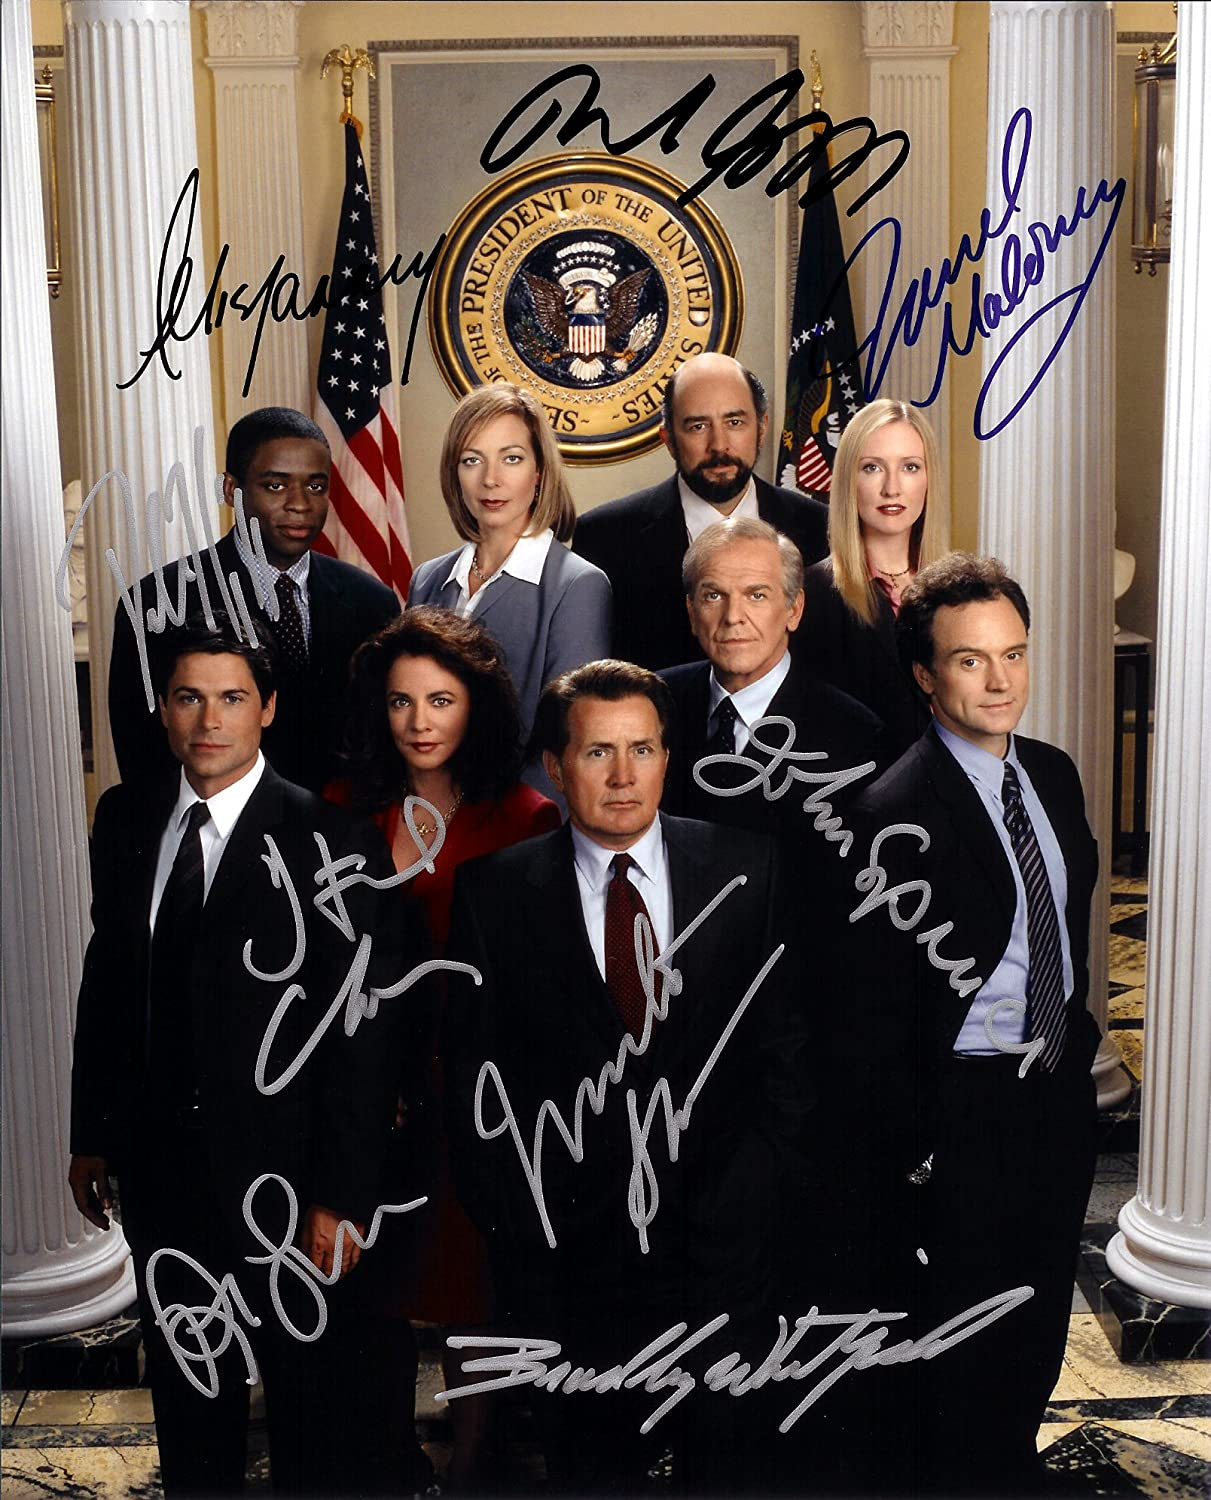 The West Wing TV Series Cast Signed Autographed 8 X 10 RP Photo - Mint Condition twice sana autographed signed original photo signal 4 6 inches collection freeshipping 012017